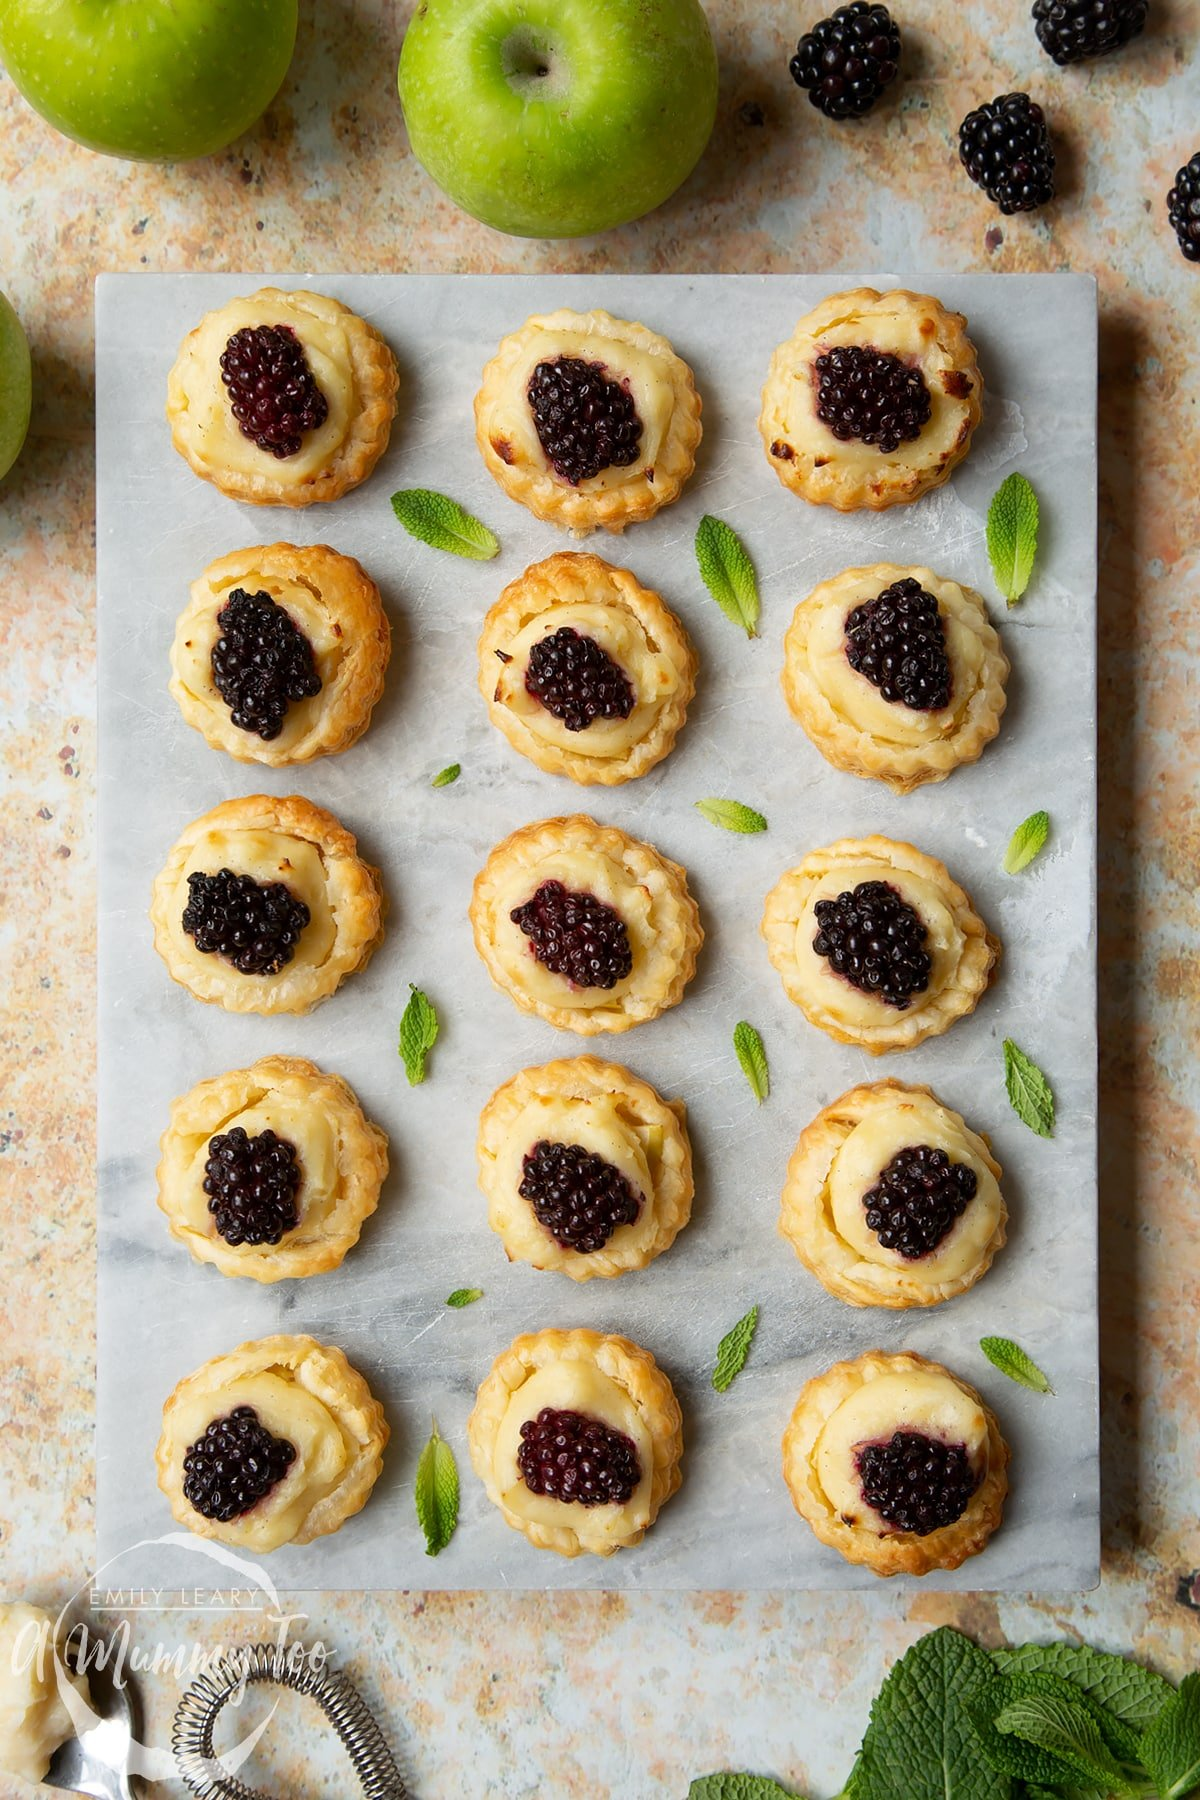 Sixteen blackberry tartlets comprised of a small puff pastry disc topped with sliced apple, pastry cream and a blackberry sit on a marble board with tiny mint leaves scattered around them.